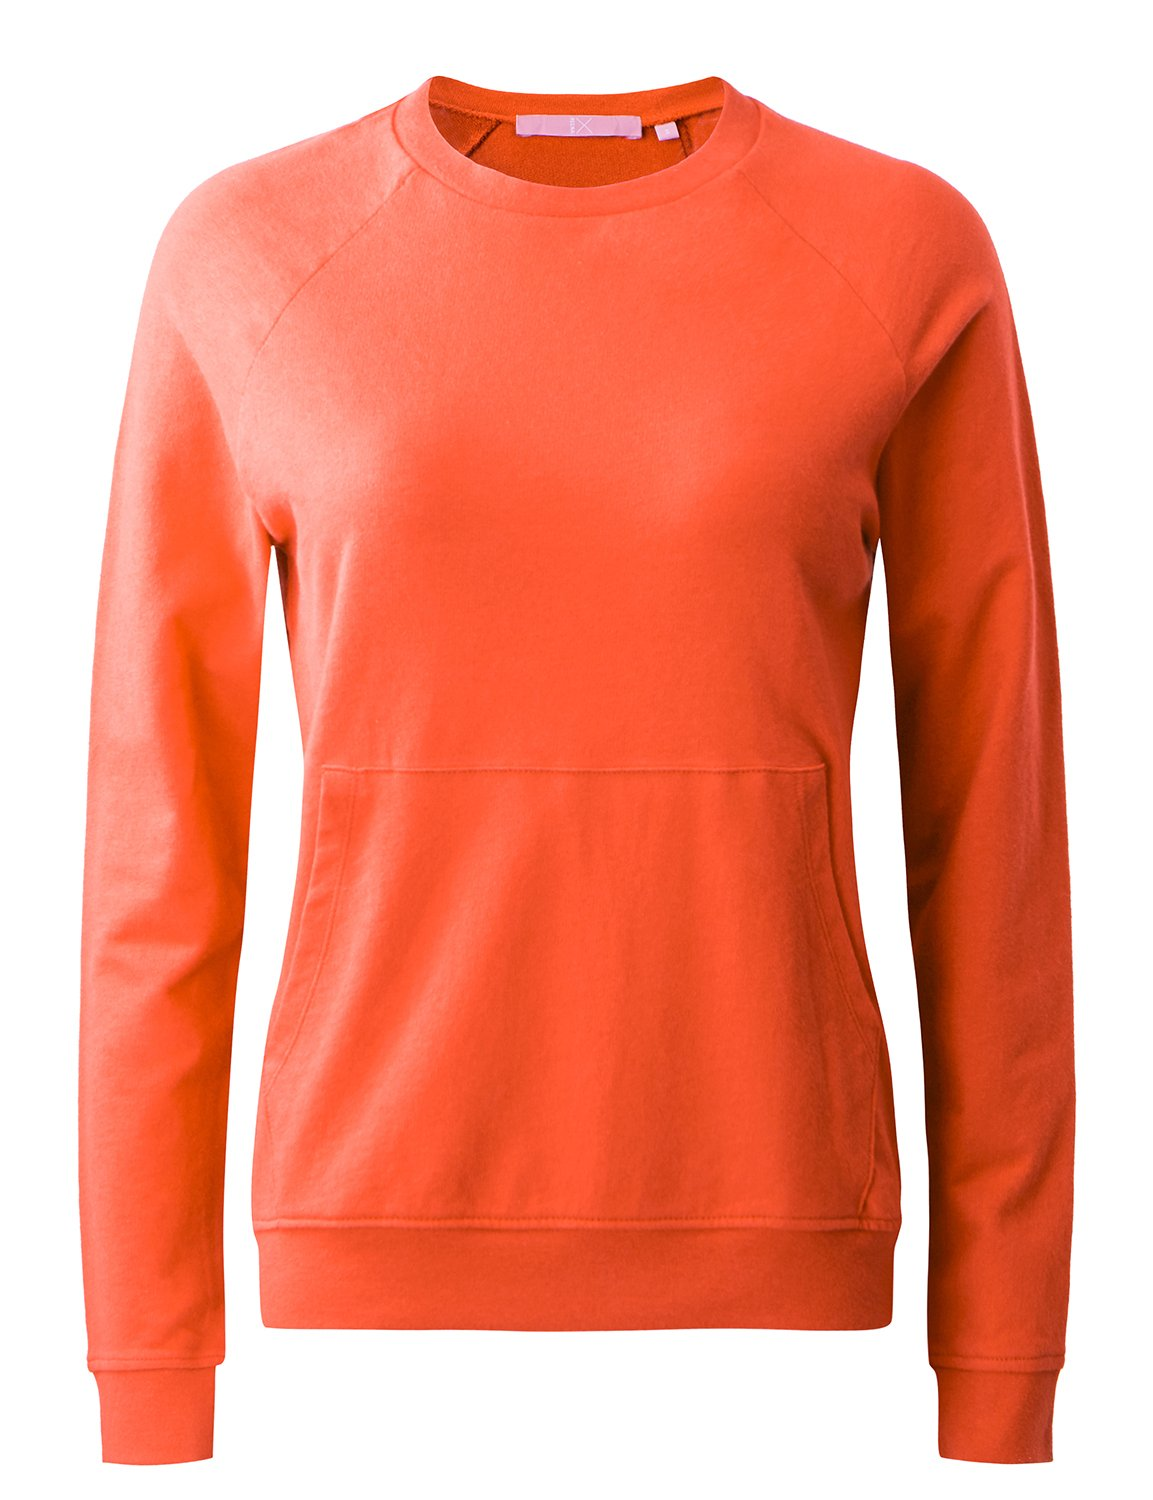 Regna X NO Bother Women's Crewneck Long Sleeve Pullover Sweatshirt (Basic & Kangaroo Pocket Style, S-3X) 8ATBW17901_P